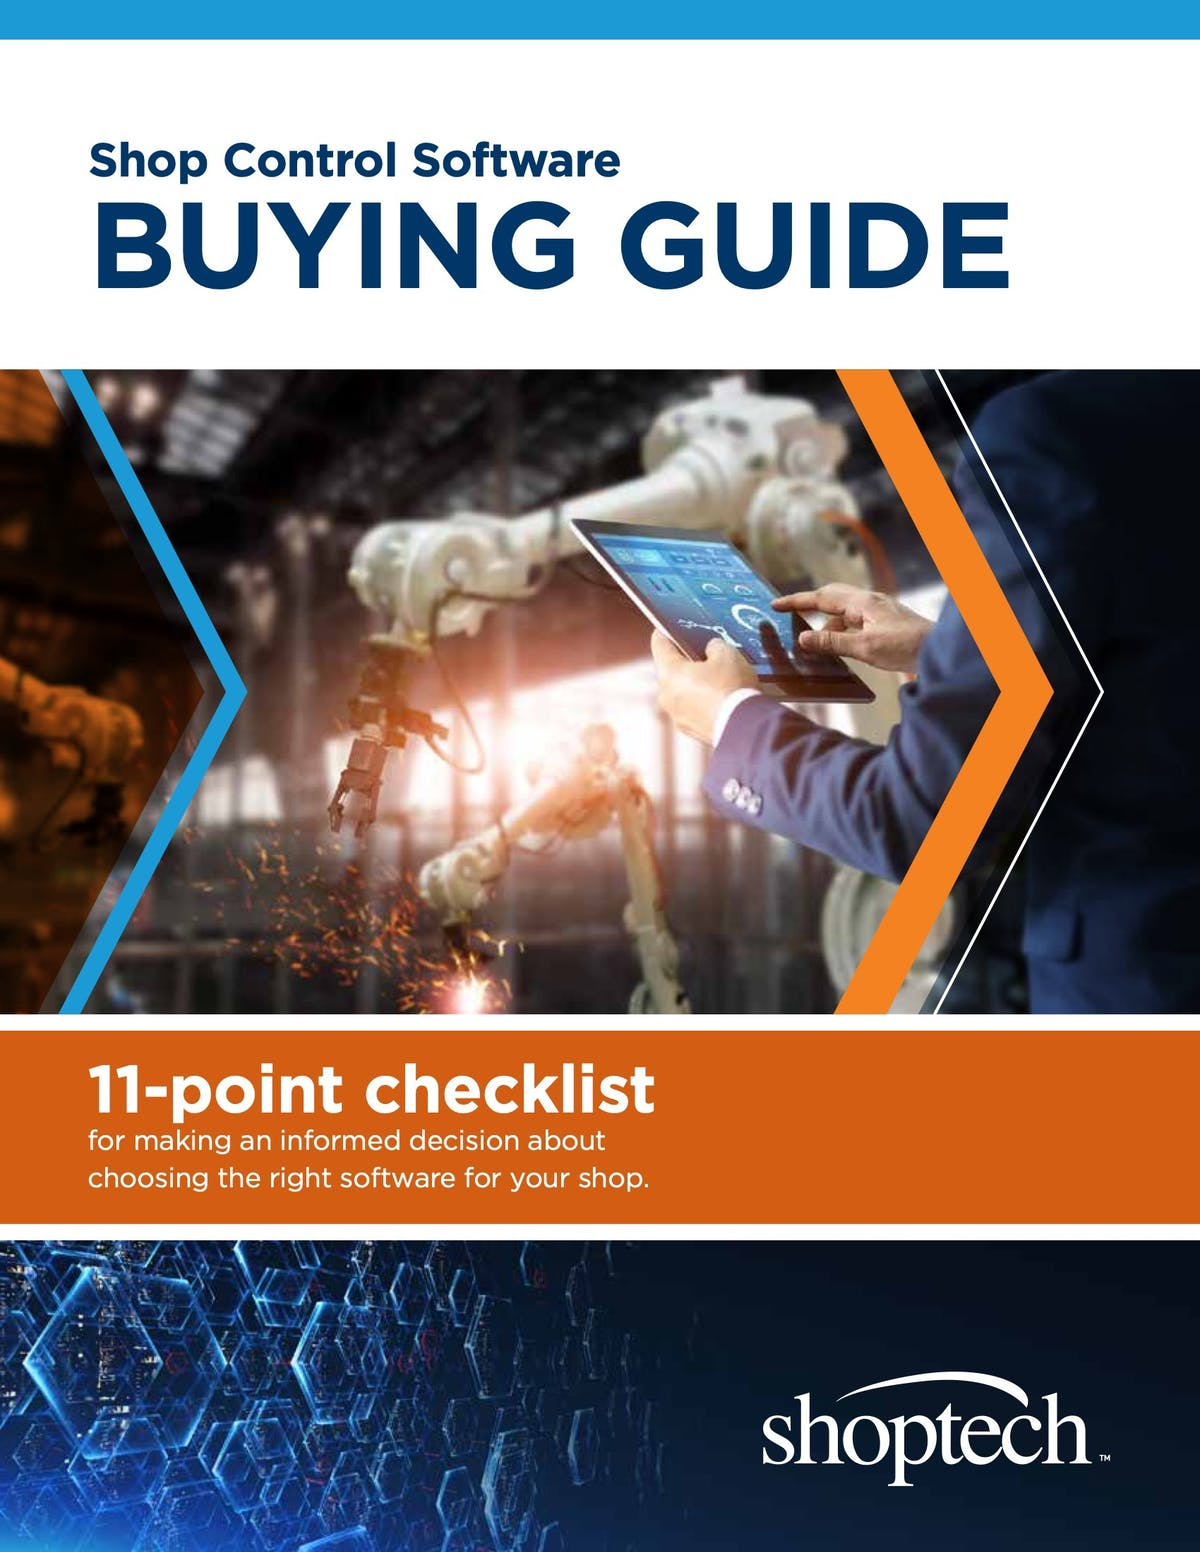 E2 Shop System White Paper - Shop Control Software Buying Guide